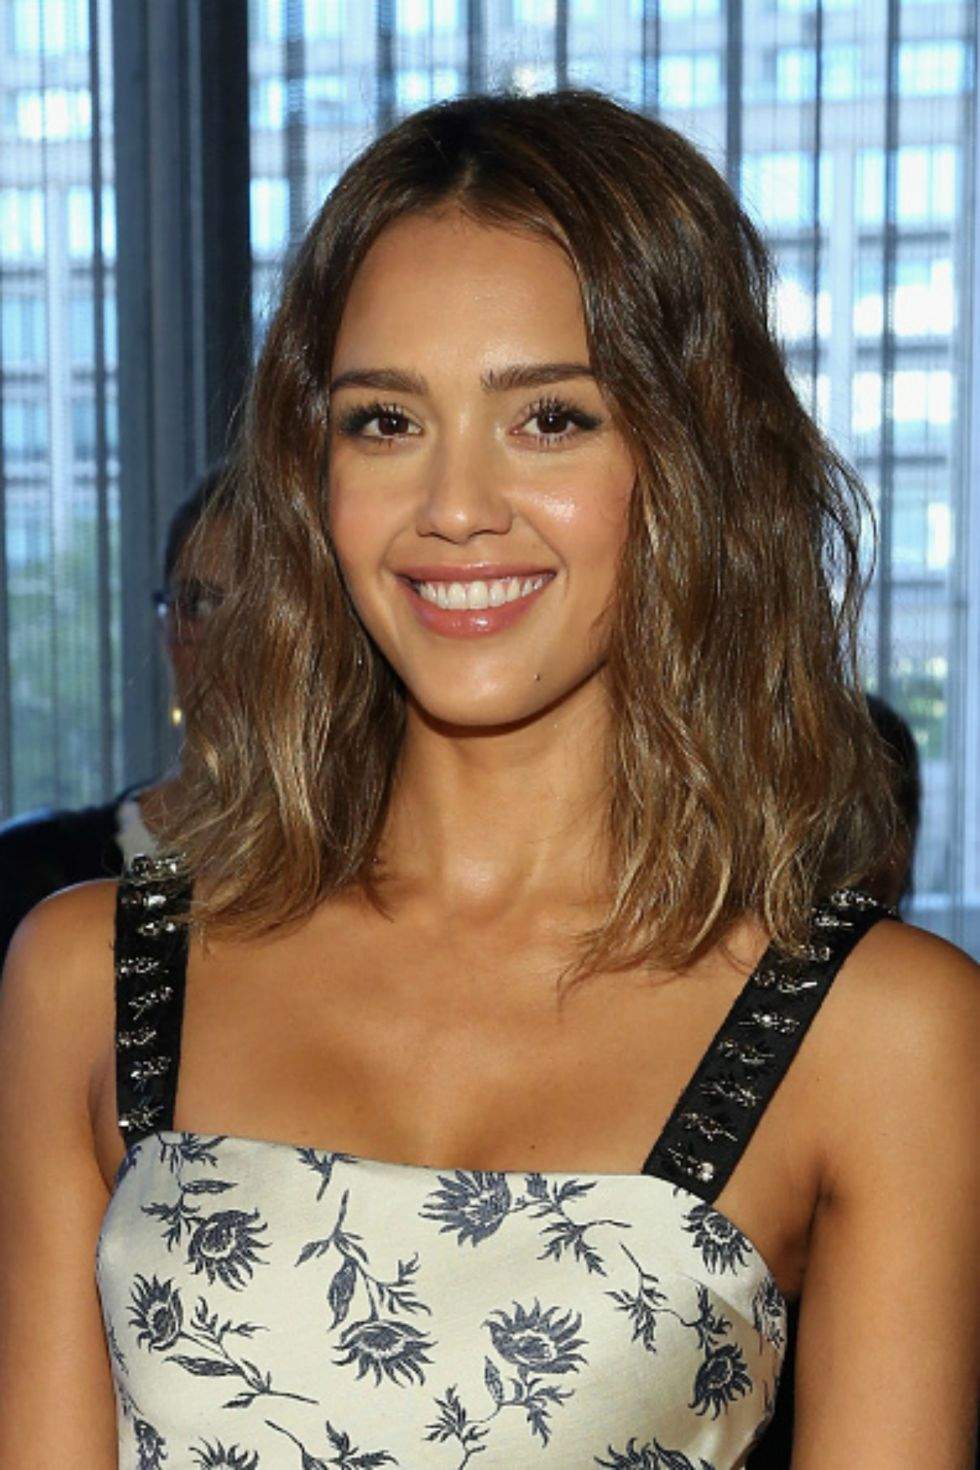 2017 05 layered hairstyles women over 70 - 2017 05 Layered Hairstyles Women Over 70 47